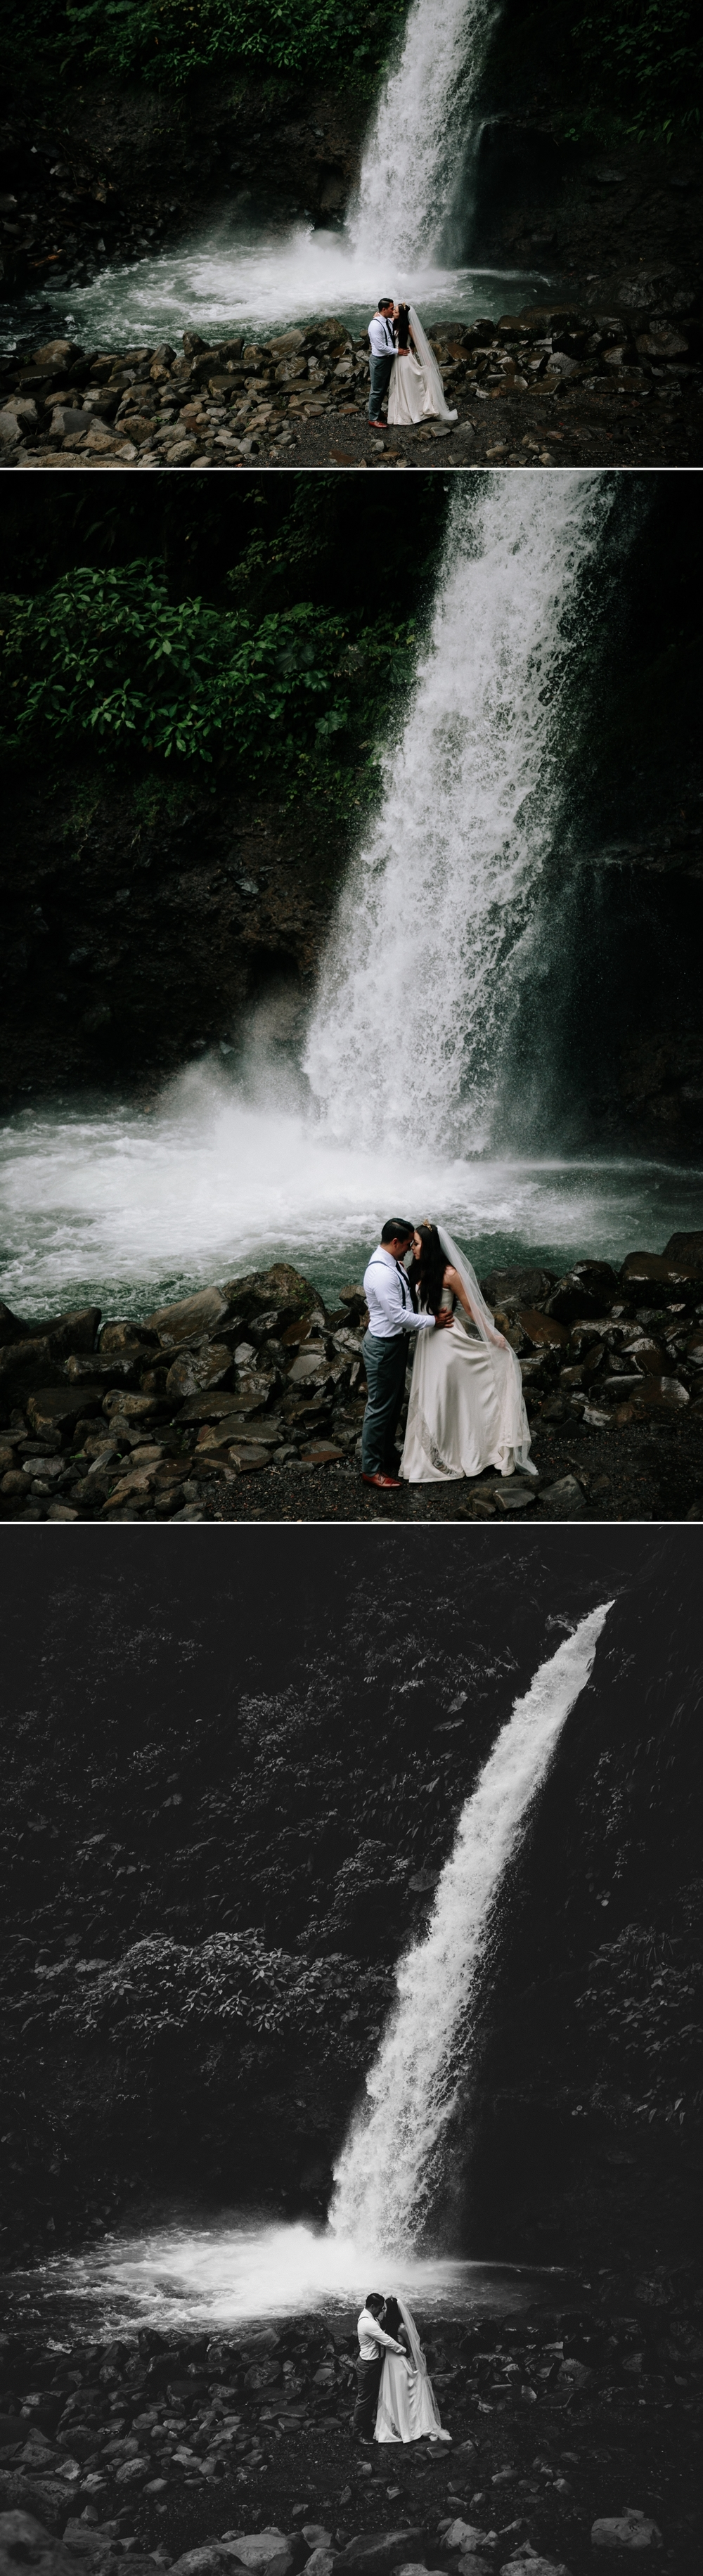 Waterfall elopement by San Diego photographer Paige Nelson